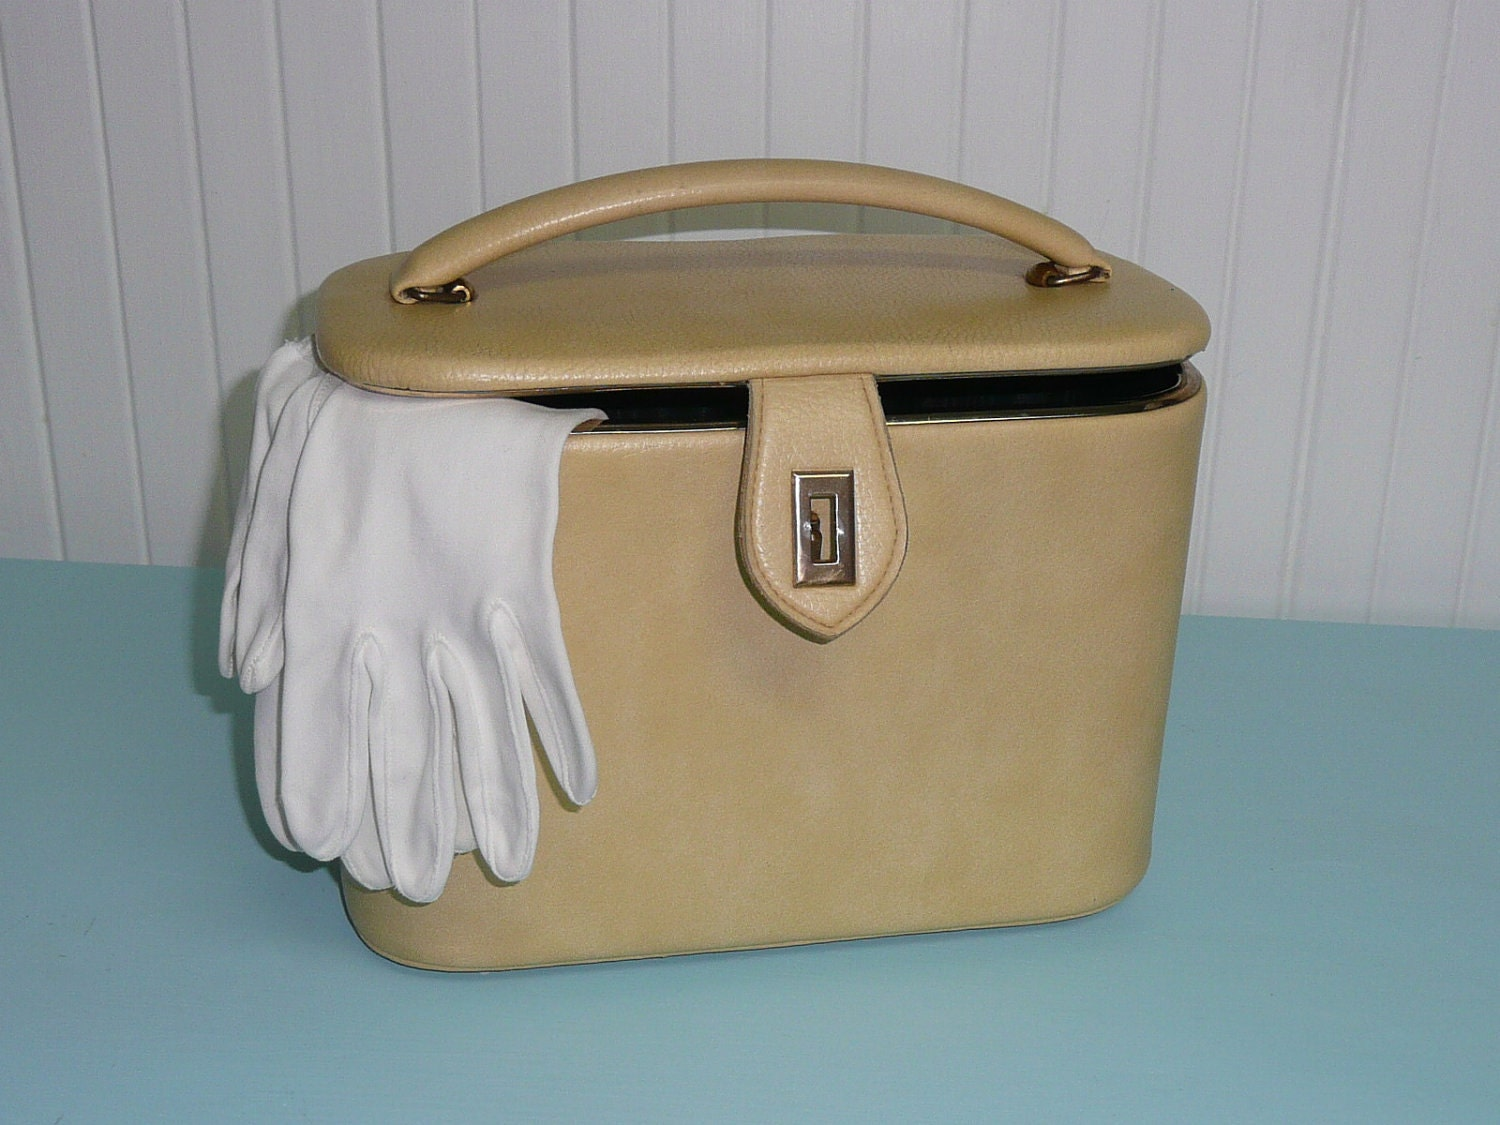 Vintage Leather Cosmetic Train Case Small Suitcase Vintage